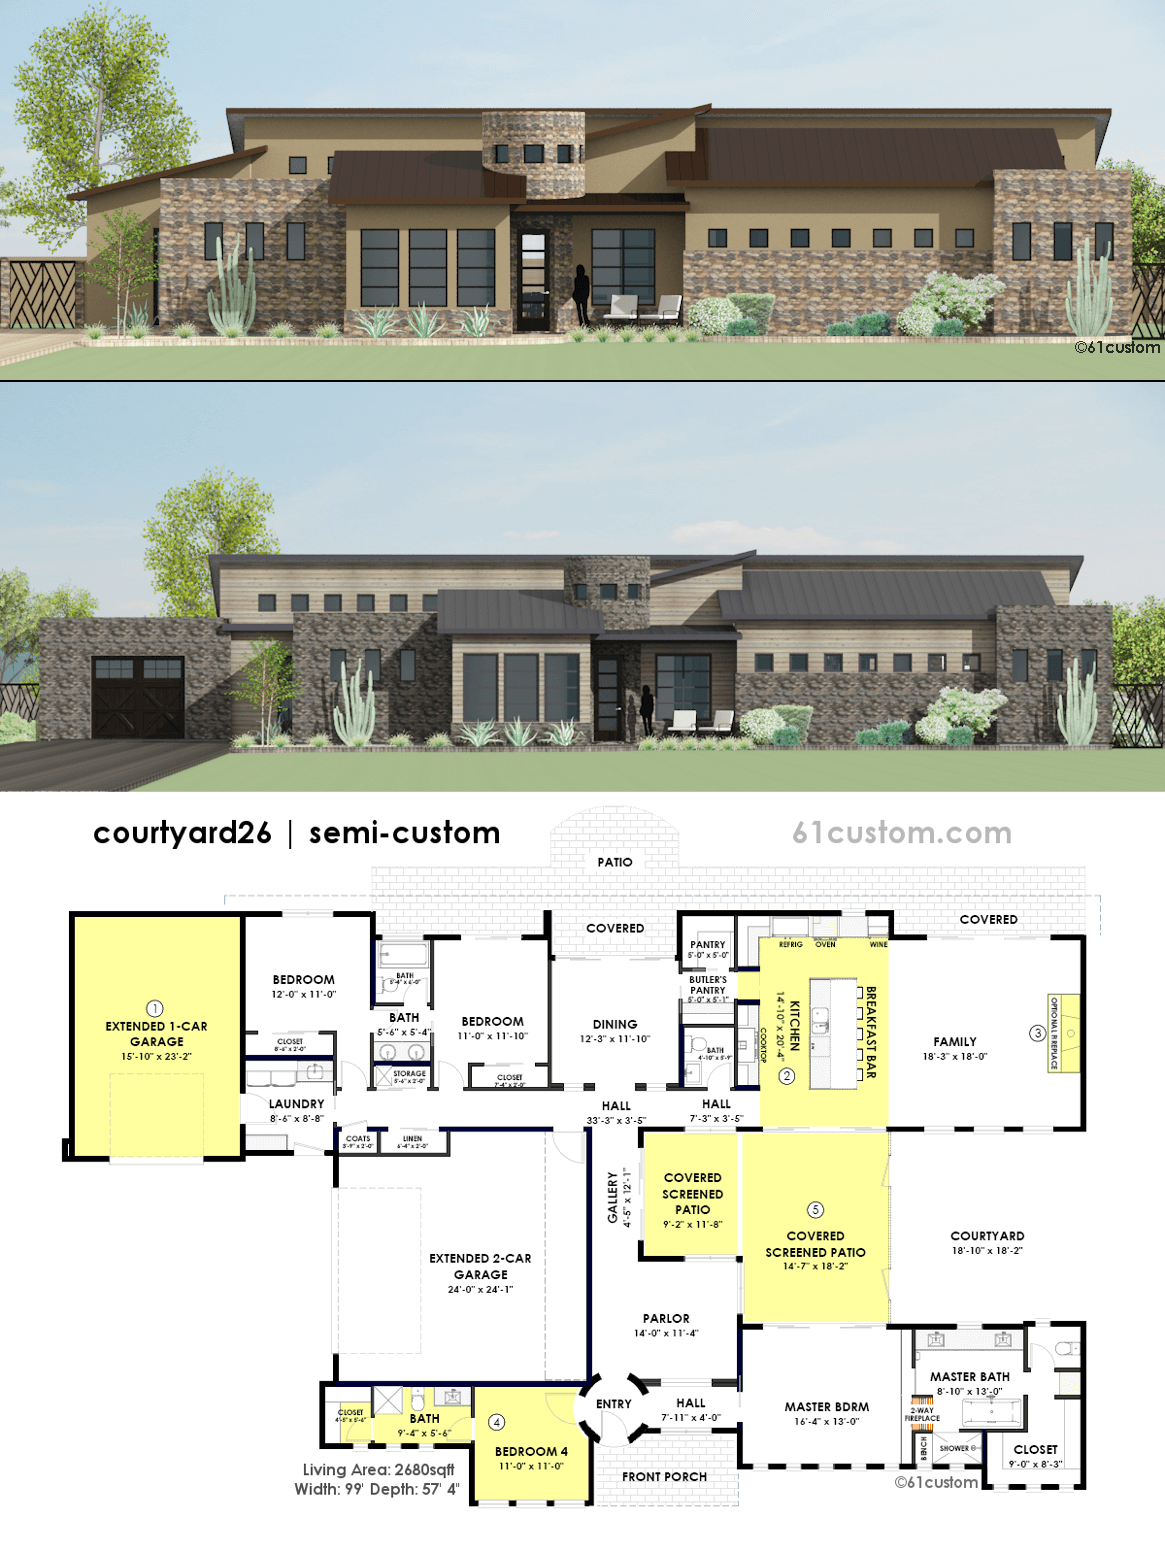 Contemporary side courtyard house plan 61custom for Contemporary home floor plans